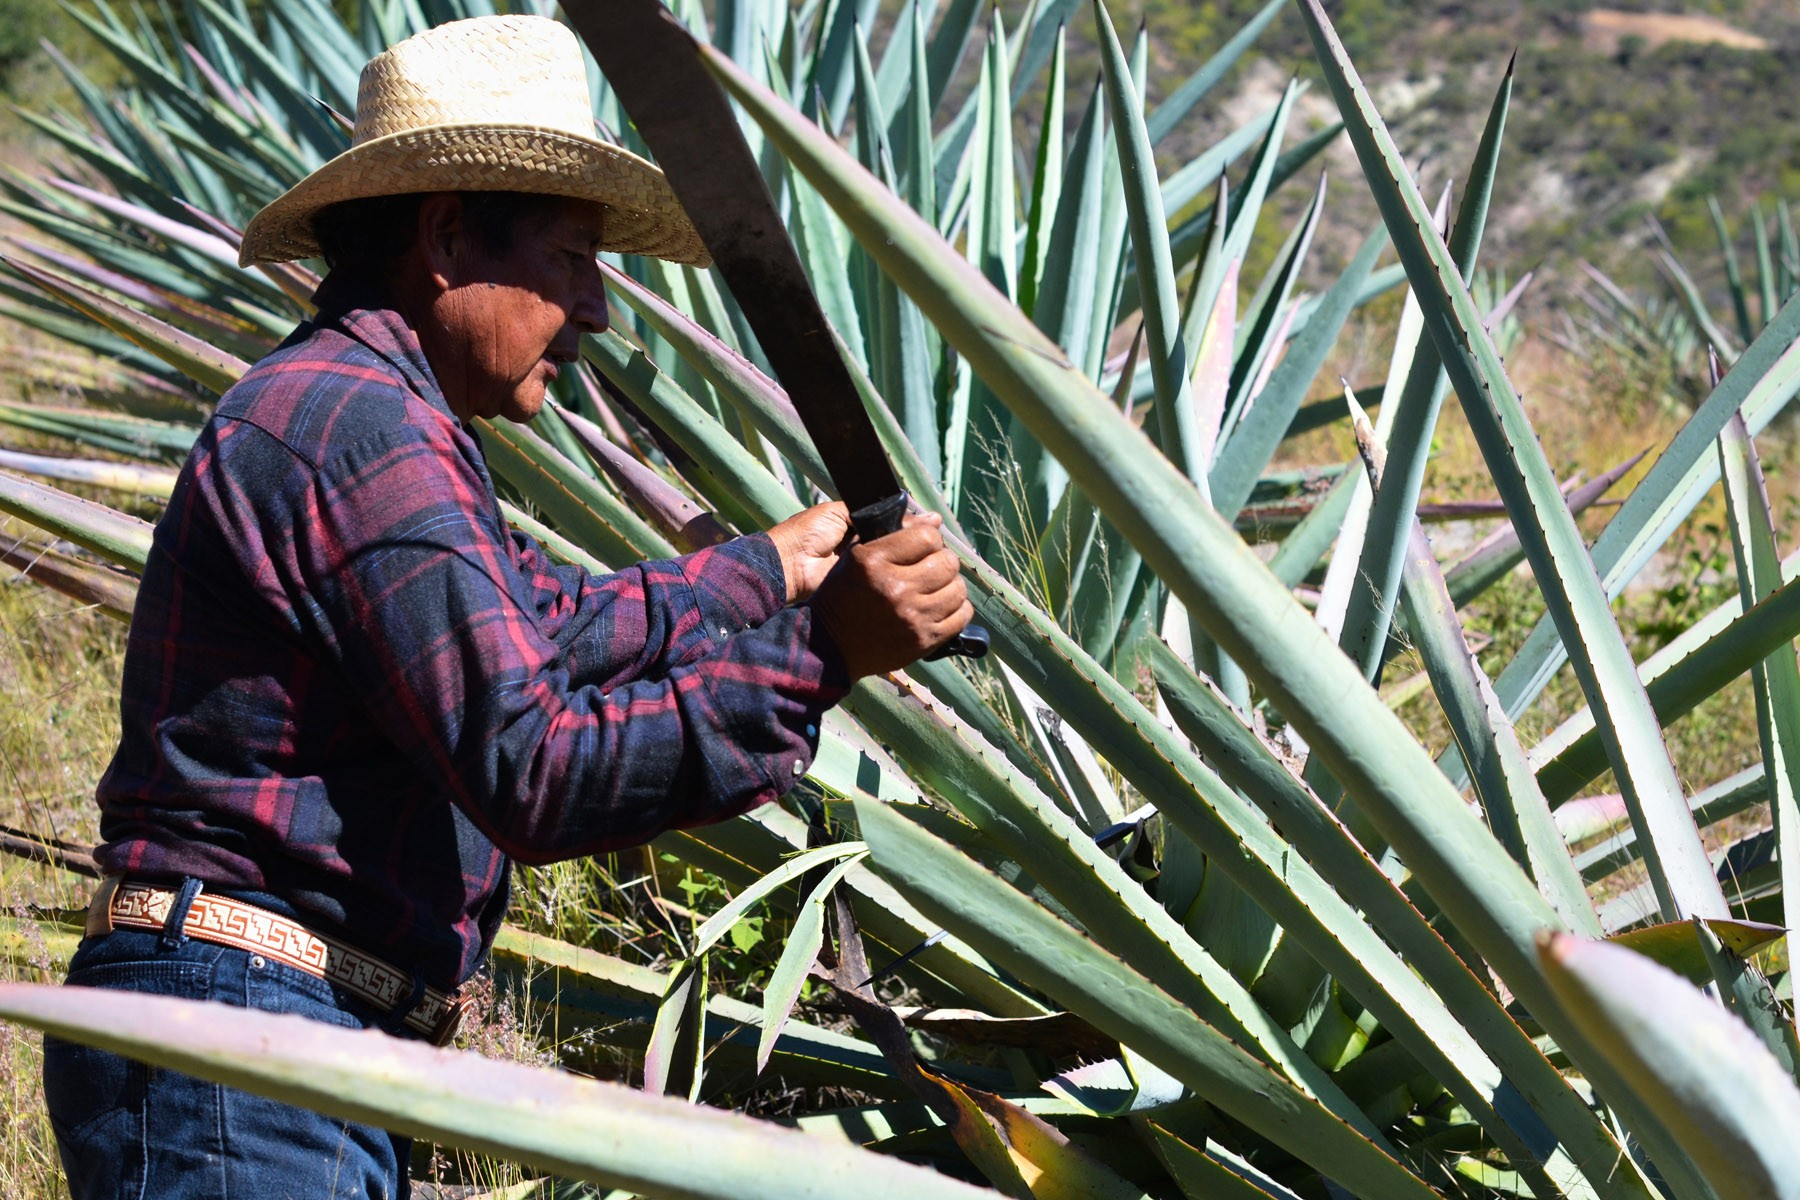 ignacio-uses-his-machete-to-cut-off-the-agave-pencas-or-leaves